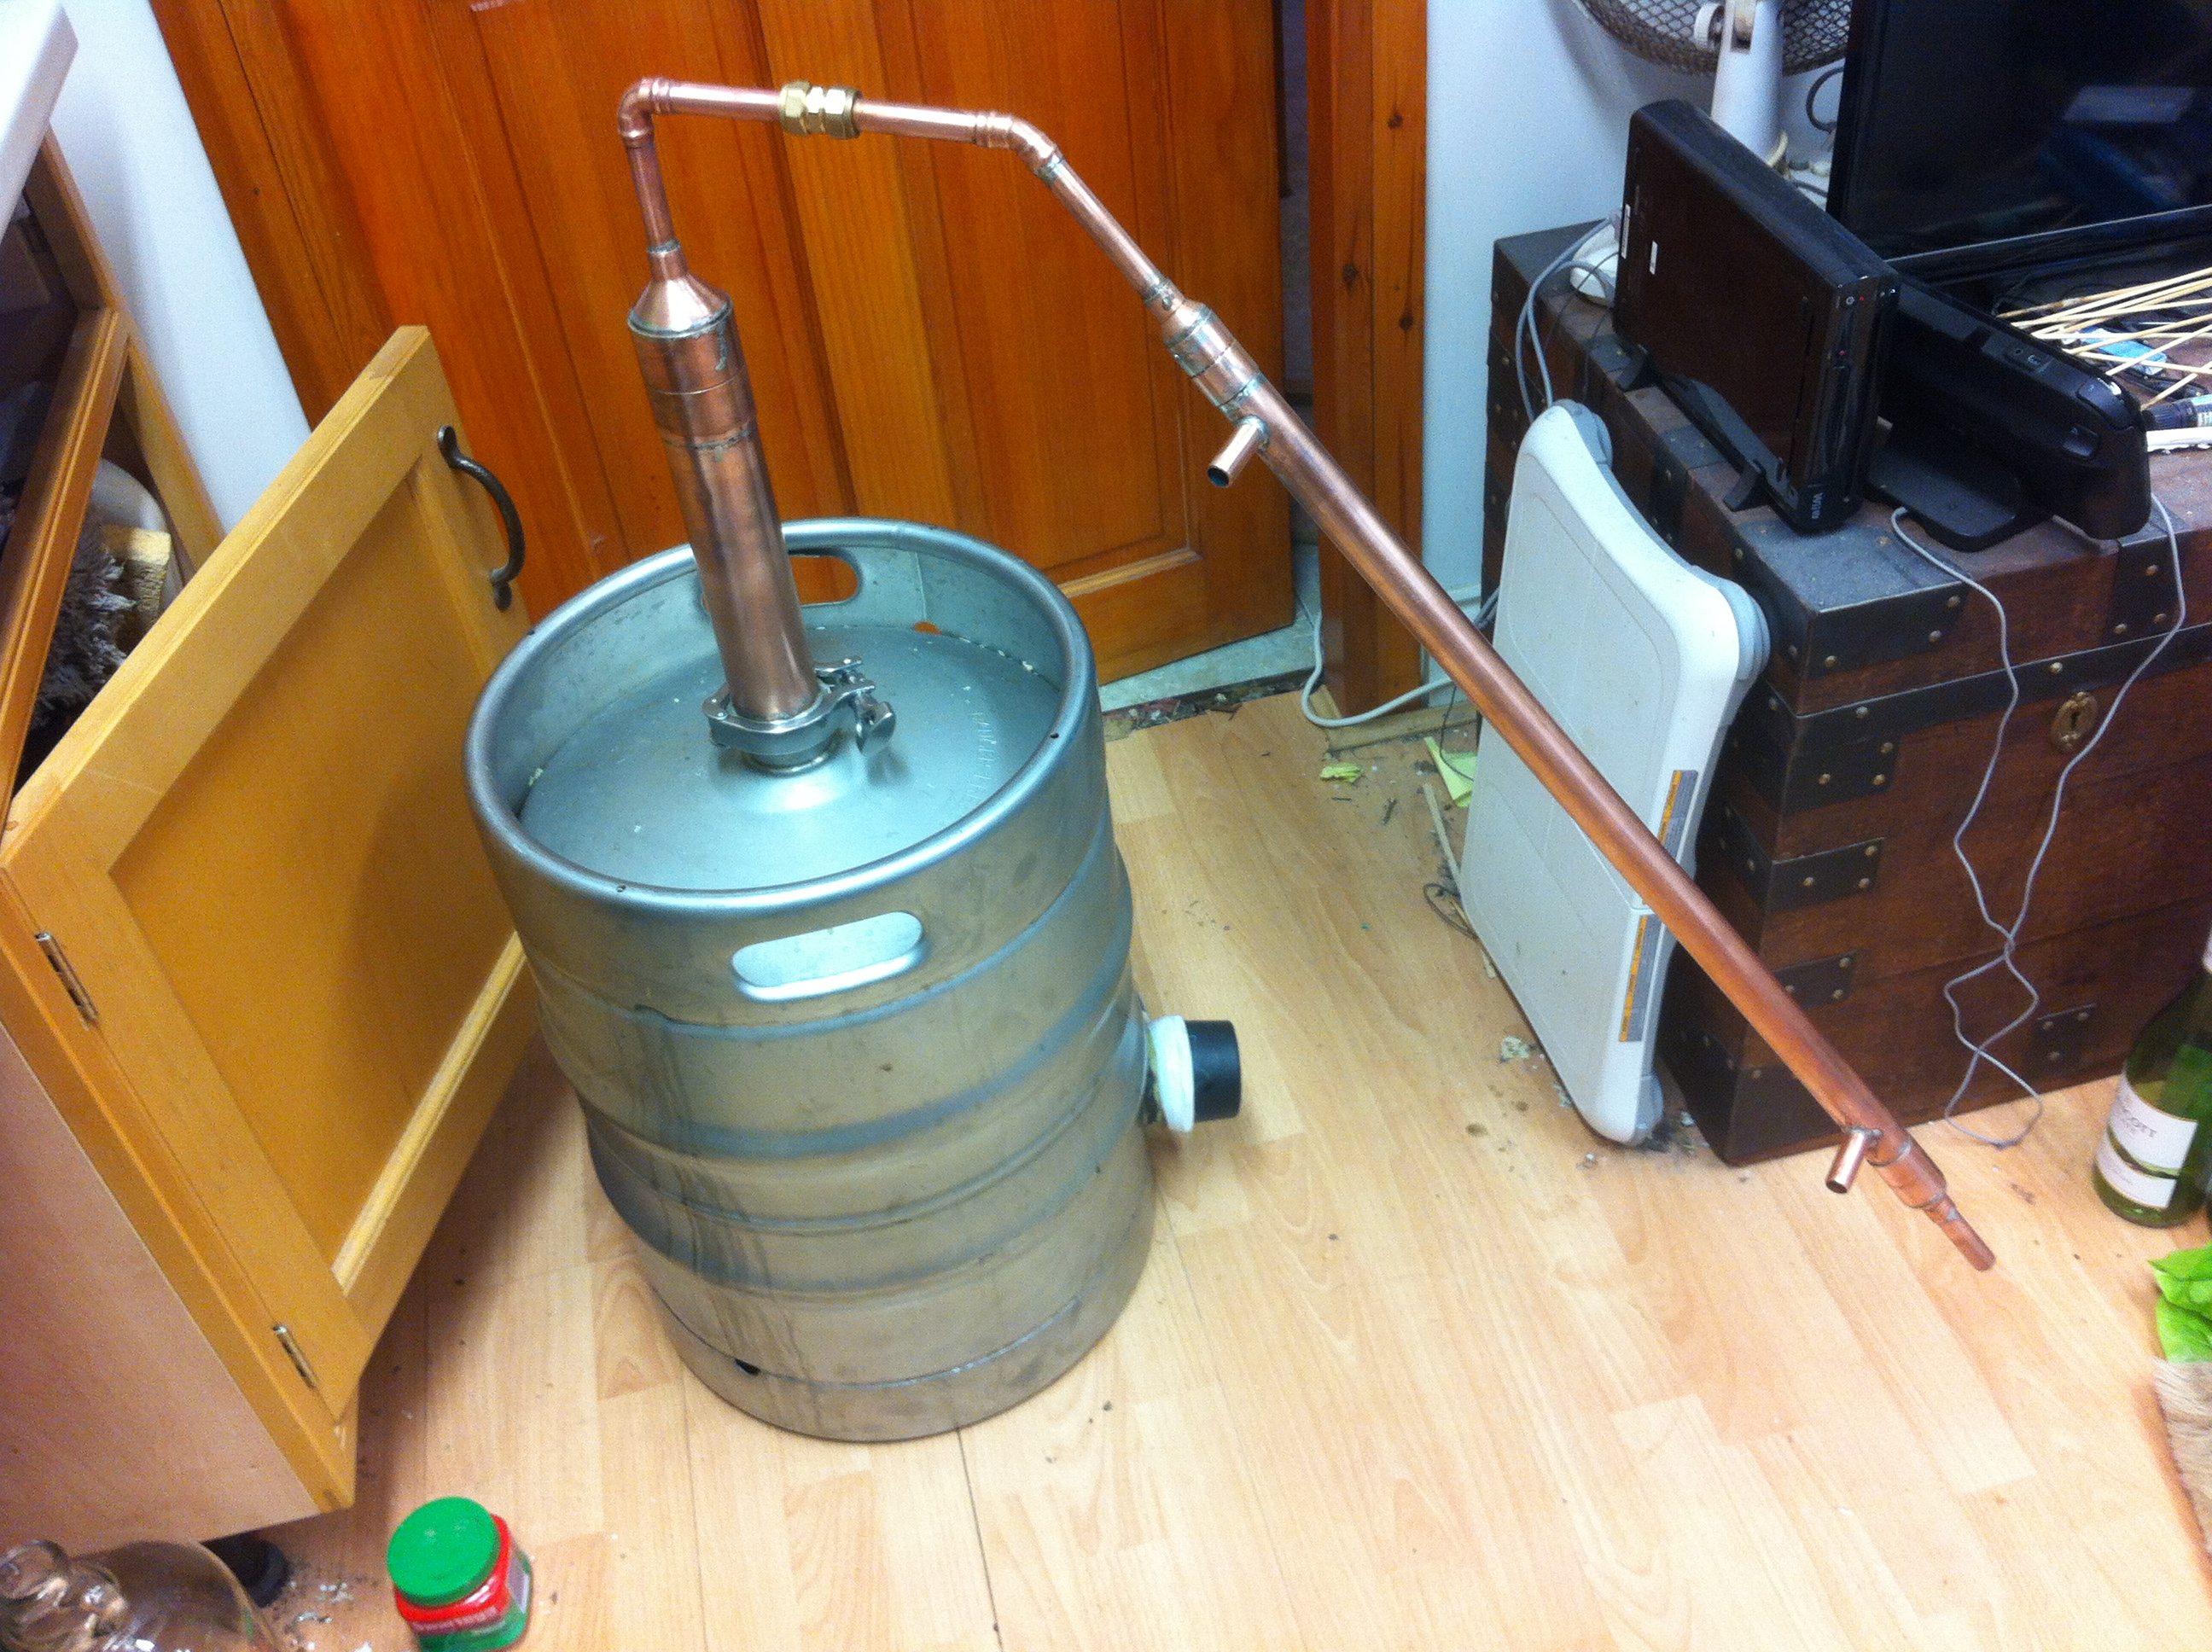 Build a Keg Still for Whiskey (Pot still design)